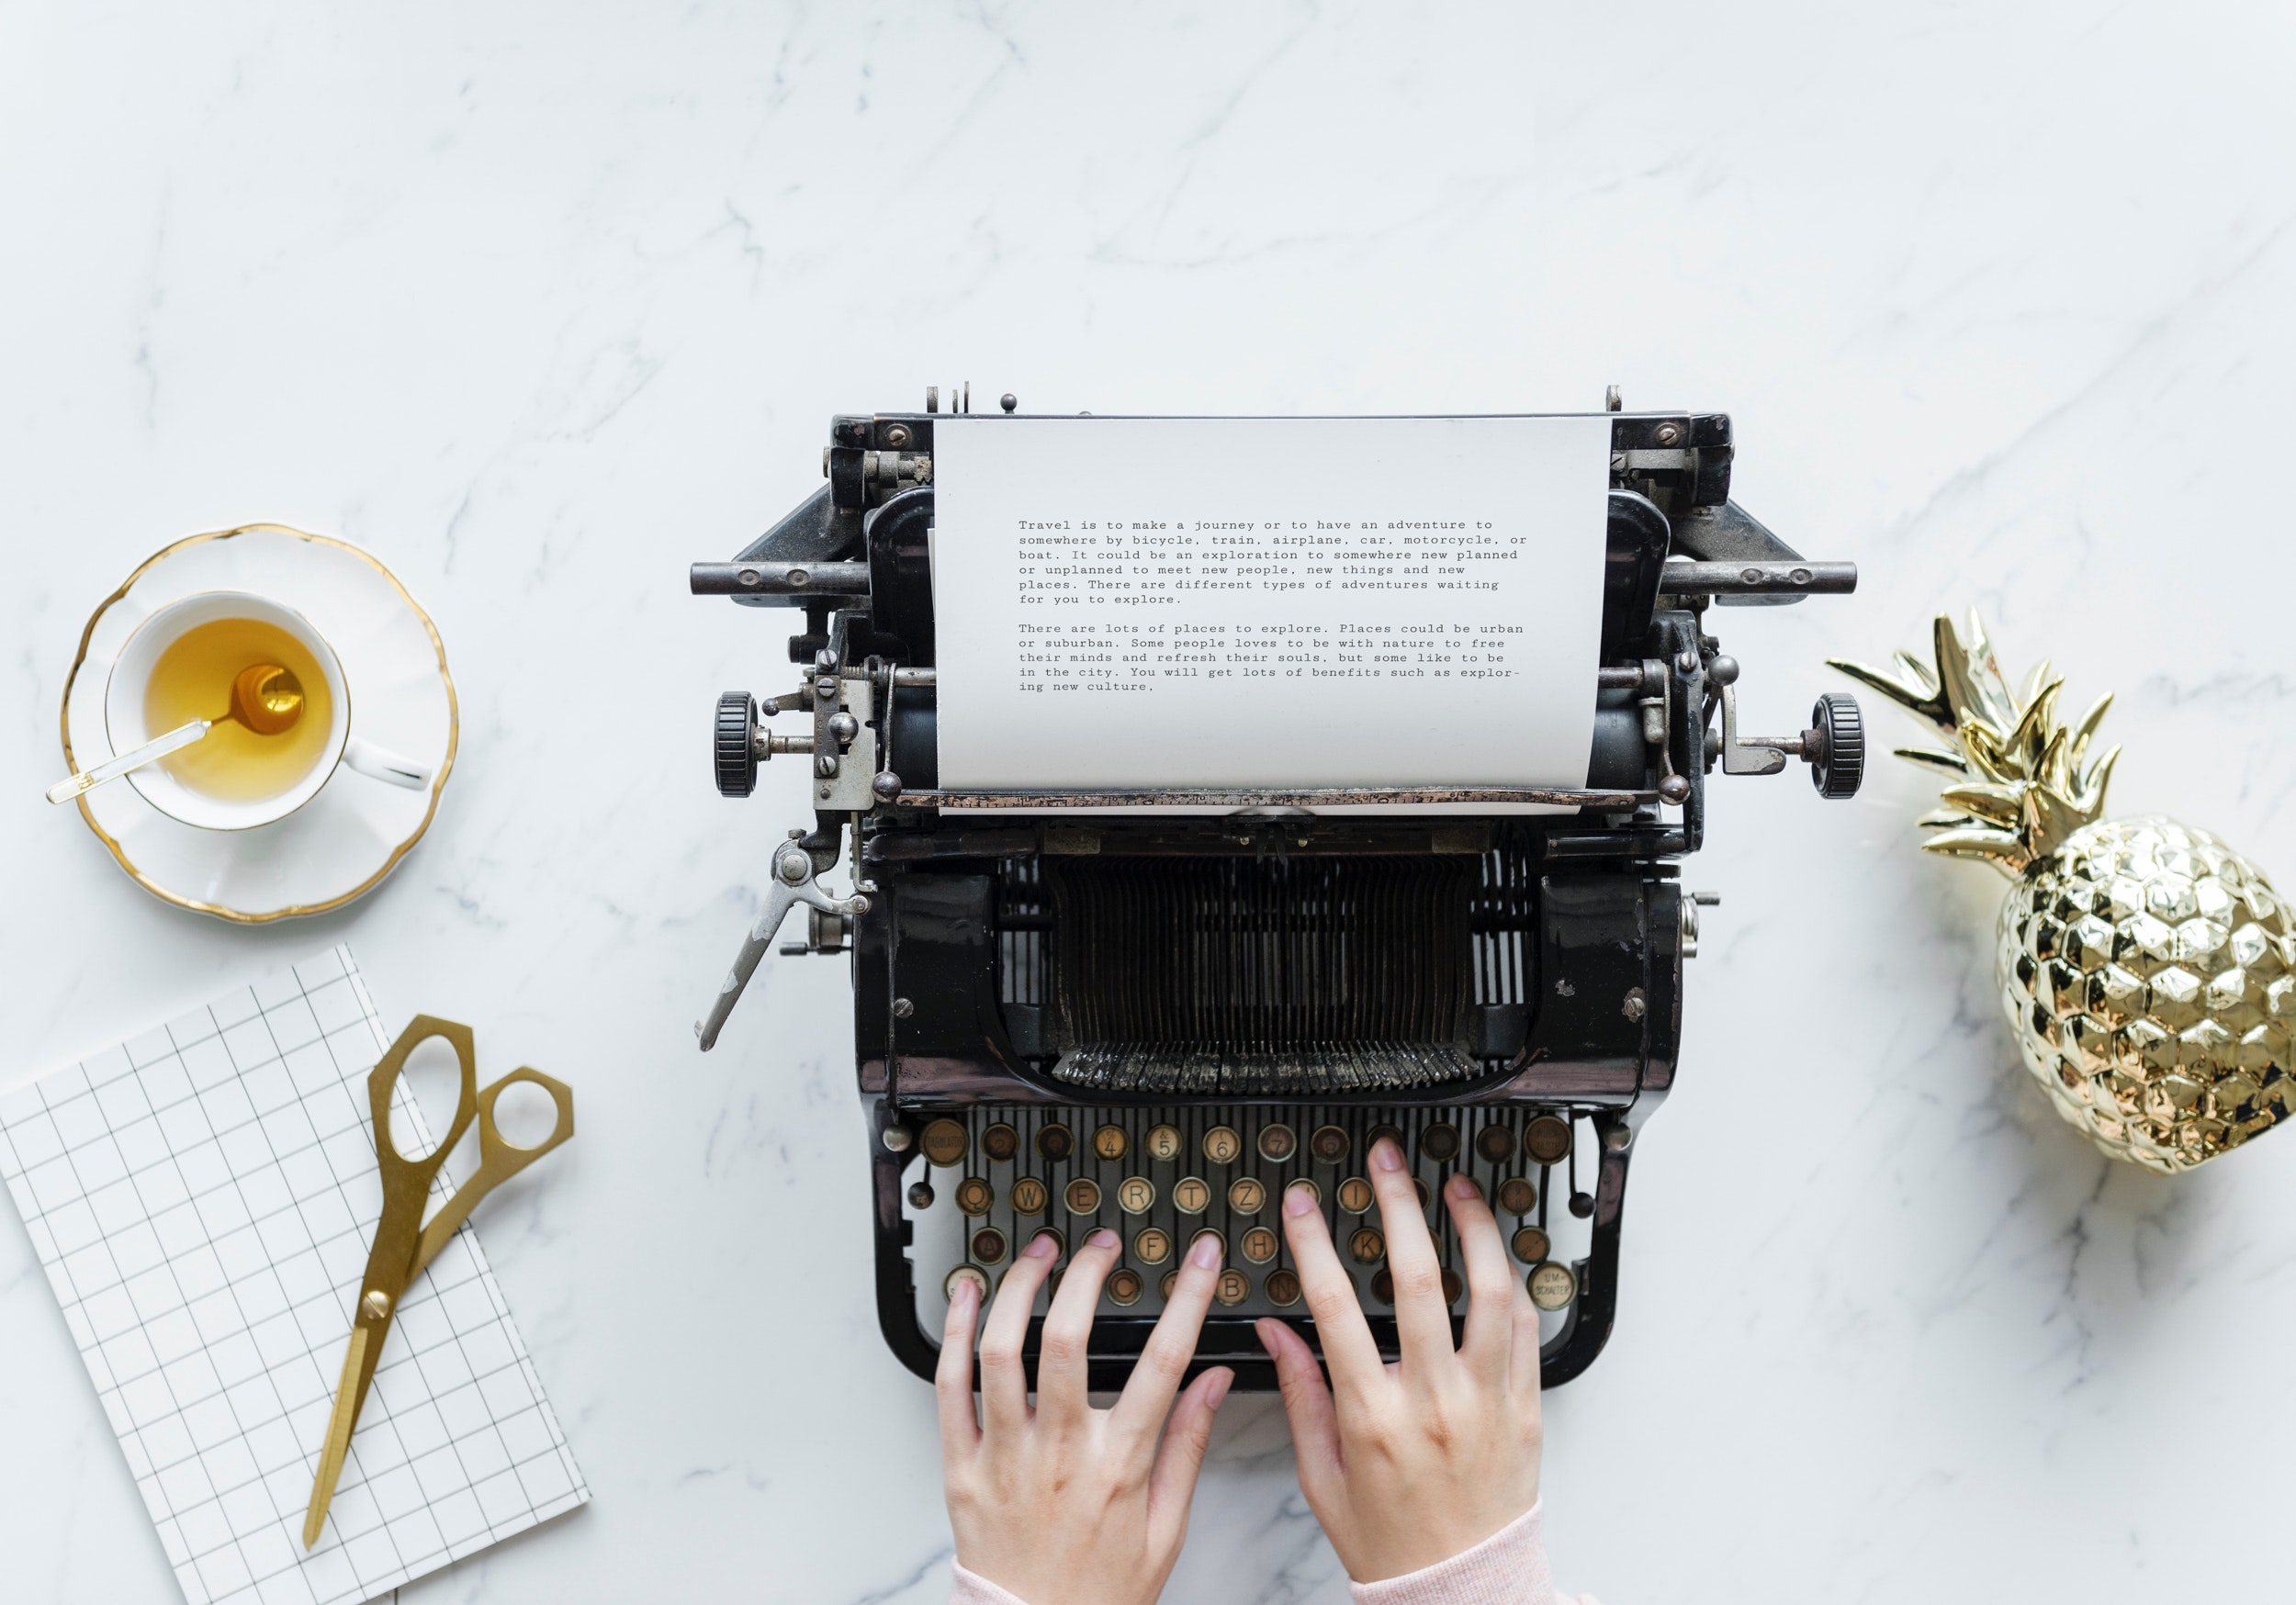 Writing Community Guidelines You Can Stick To